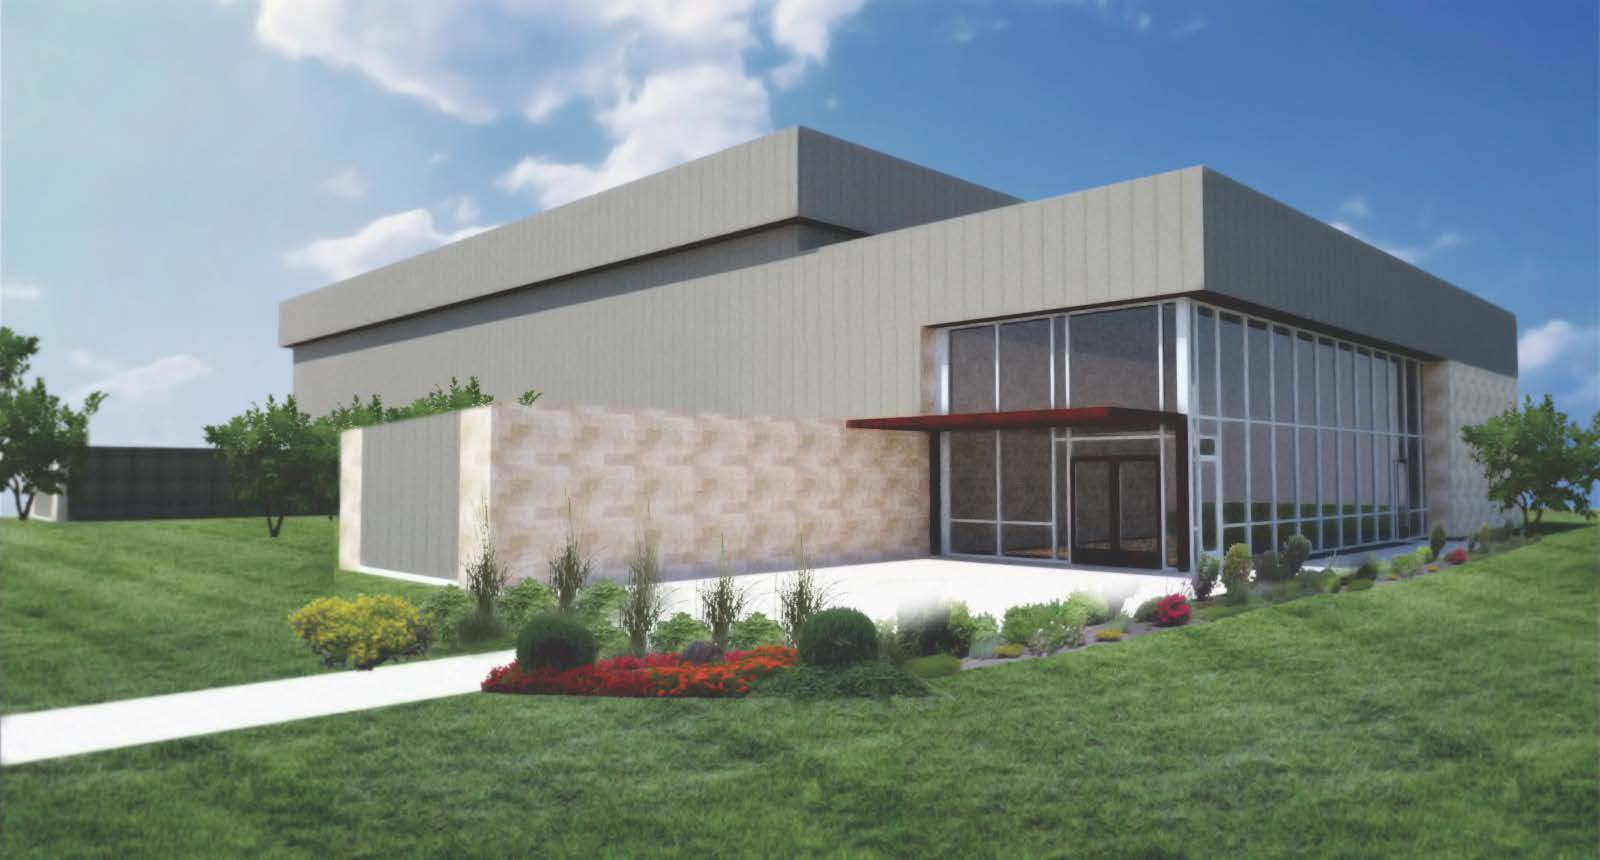 Exterior Rendering Douglass Recreation Center Concept